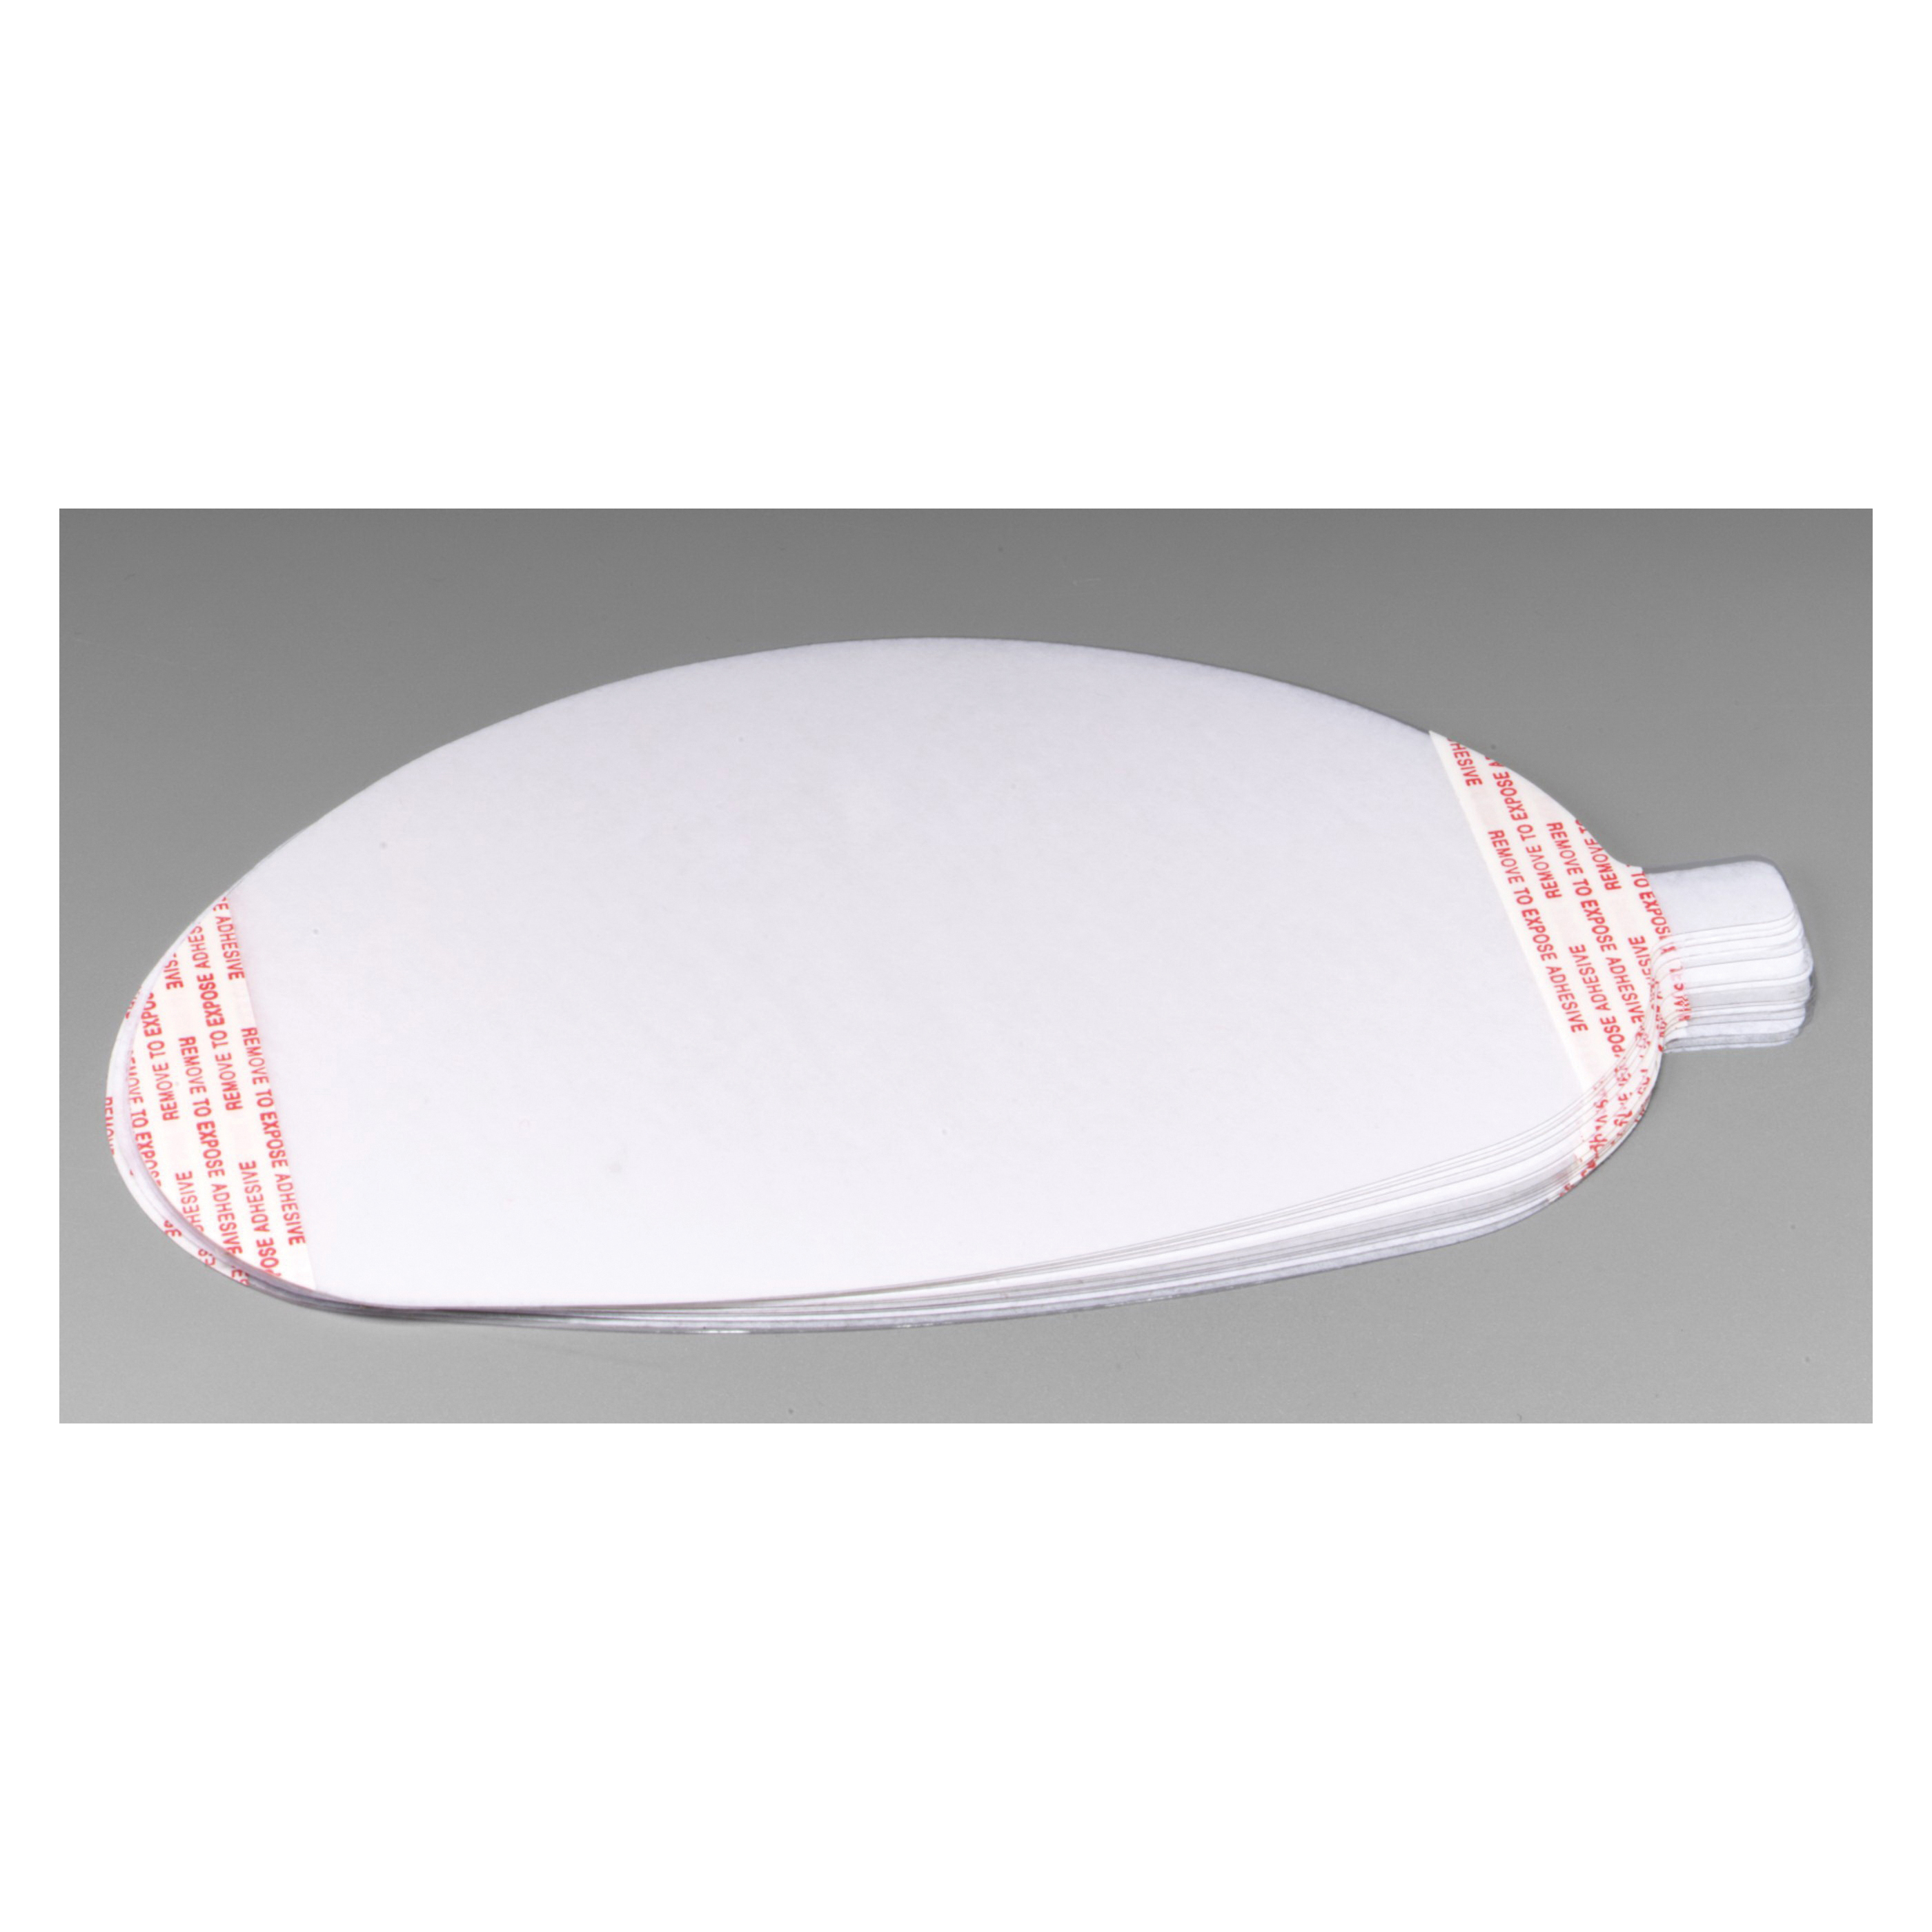 3M™ 021200-60418 Lens Cover, For Use With 7000 Series Full Facepiece Respirators, White